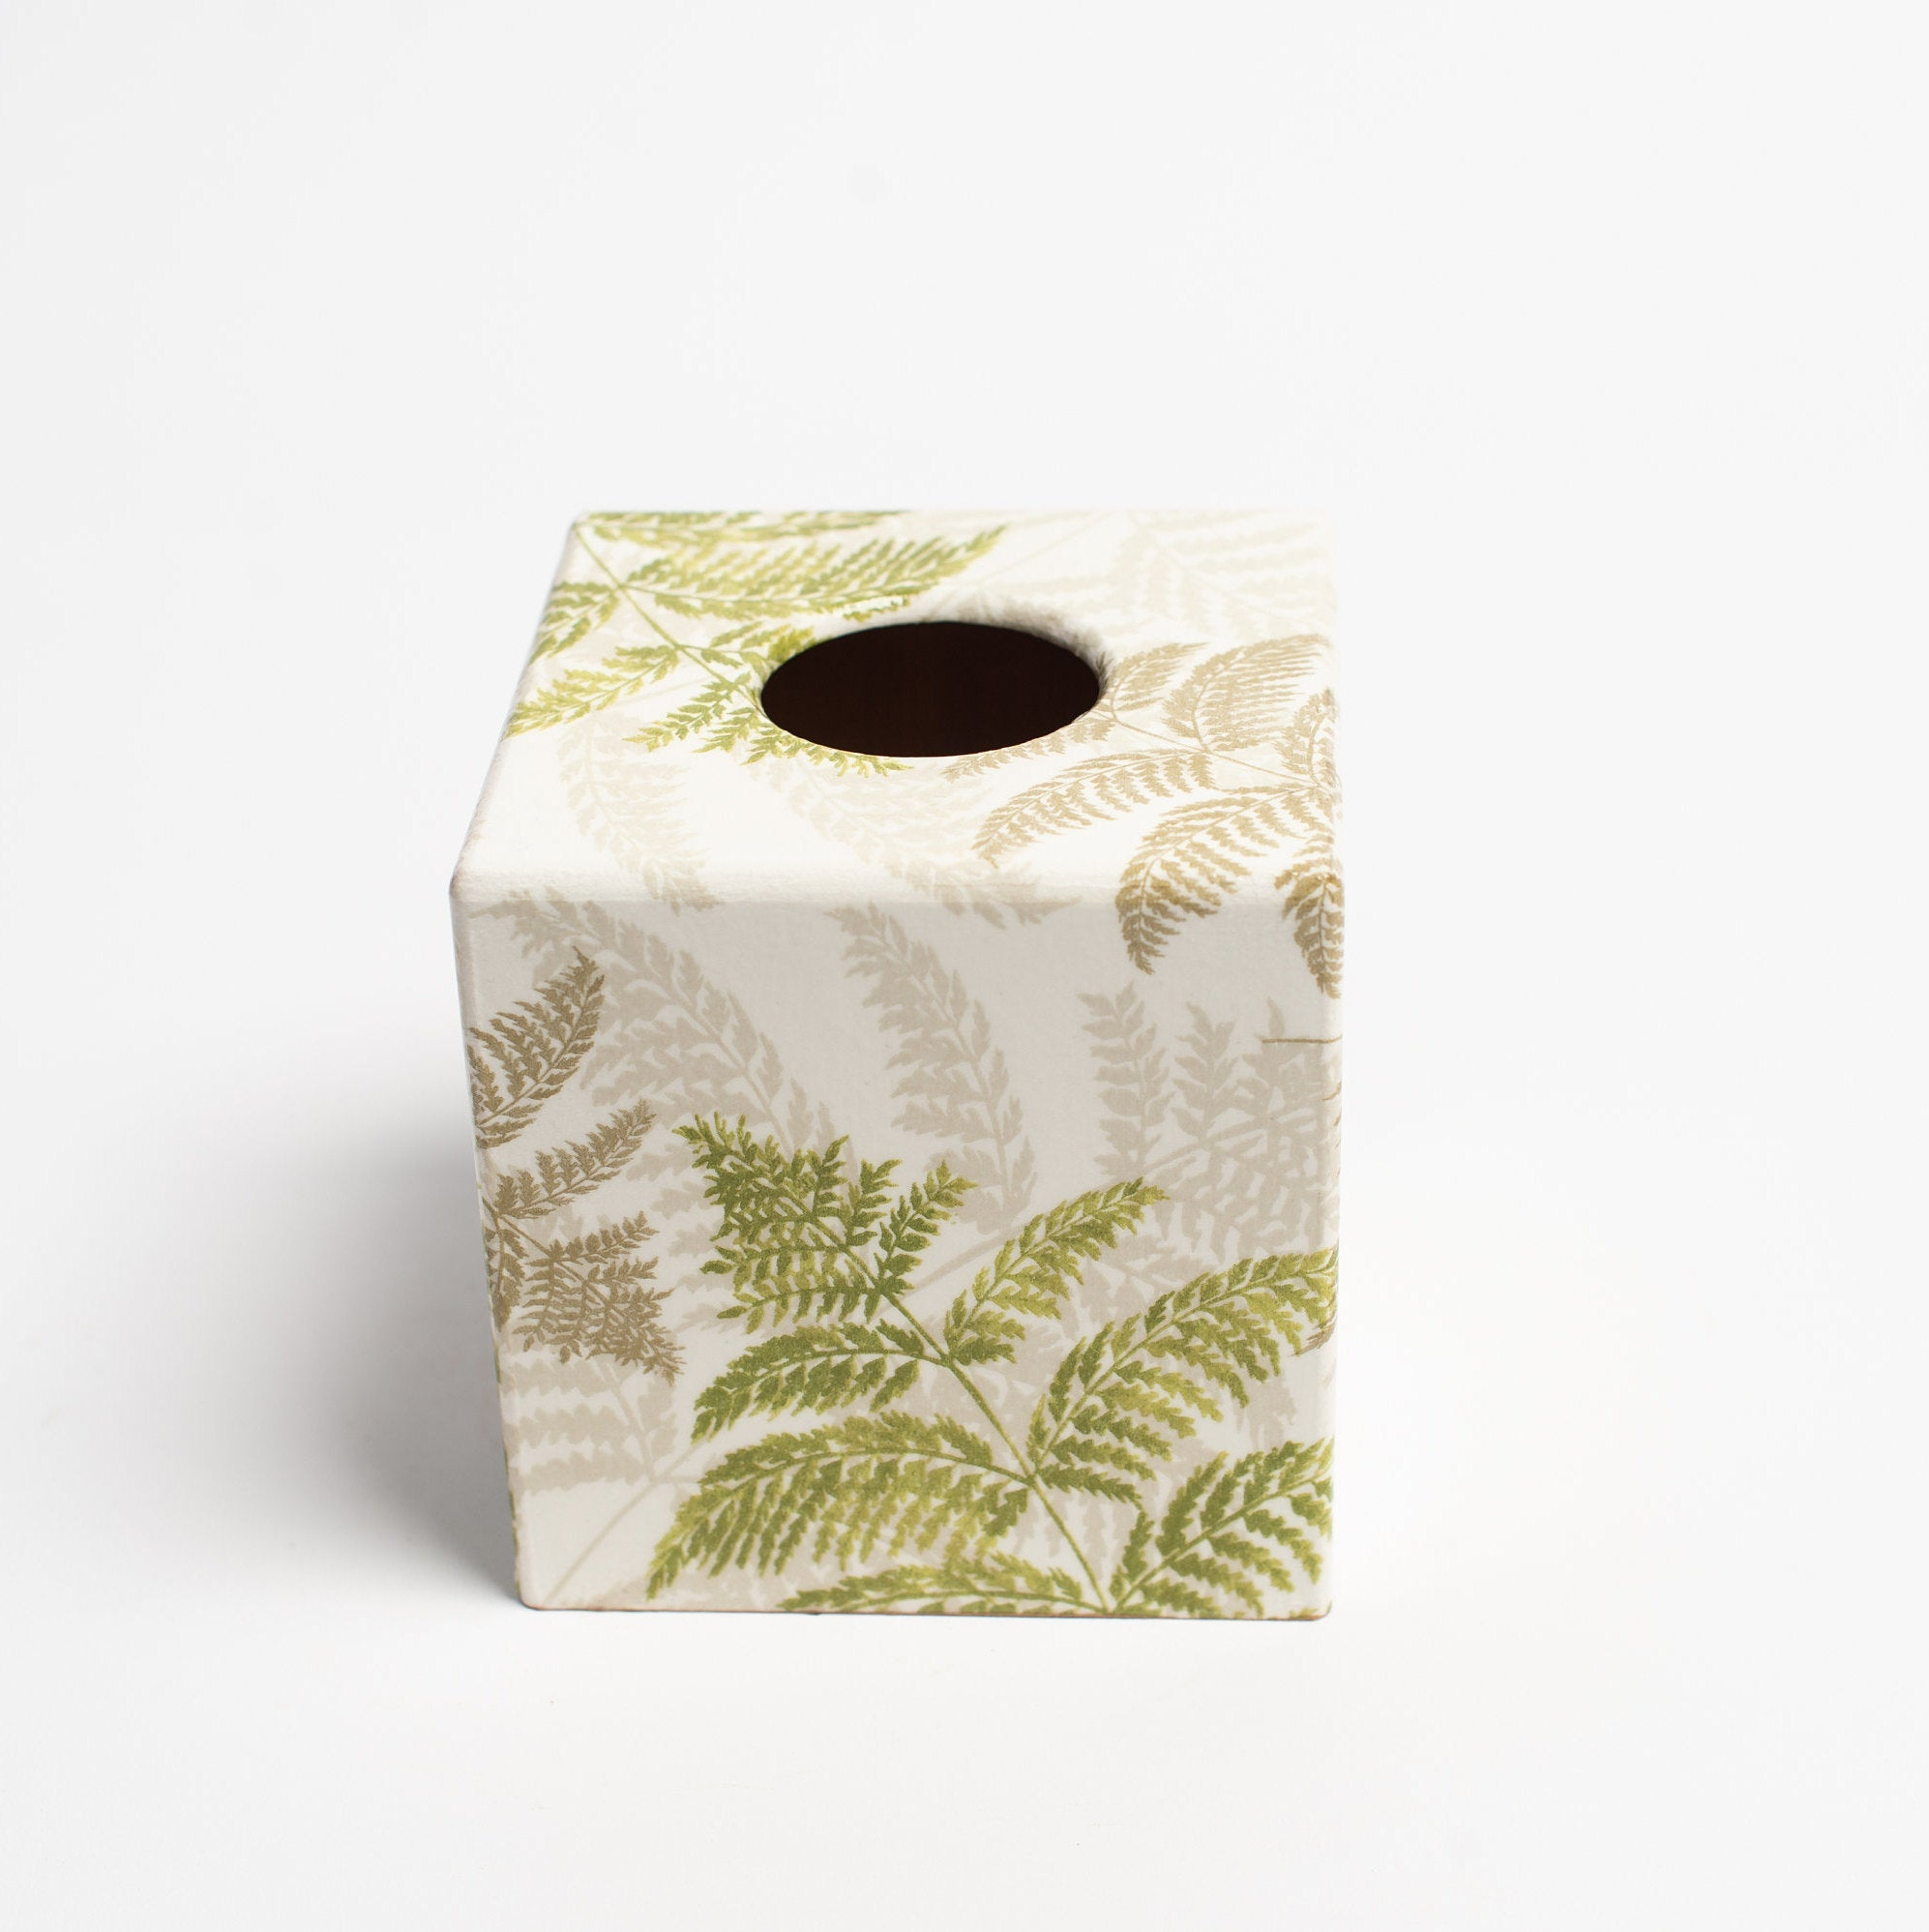 Green Fern Tissue Box Cover - Handmade